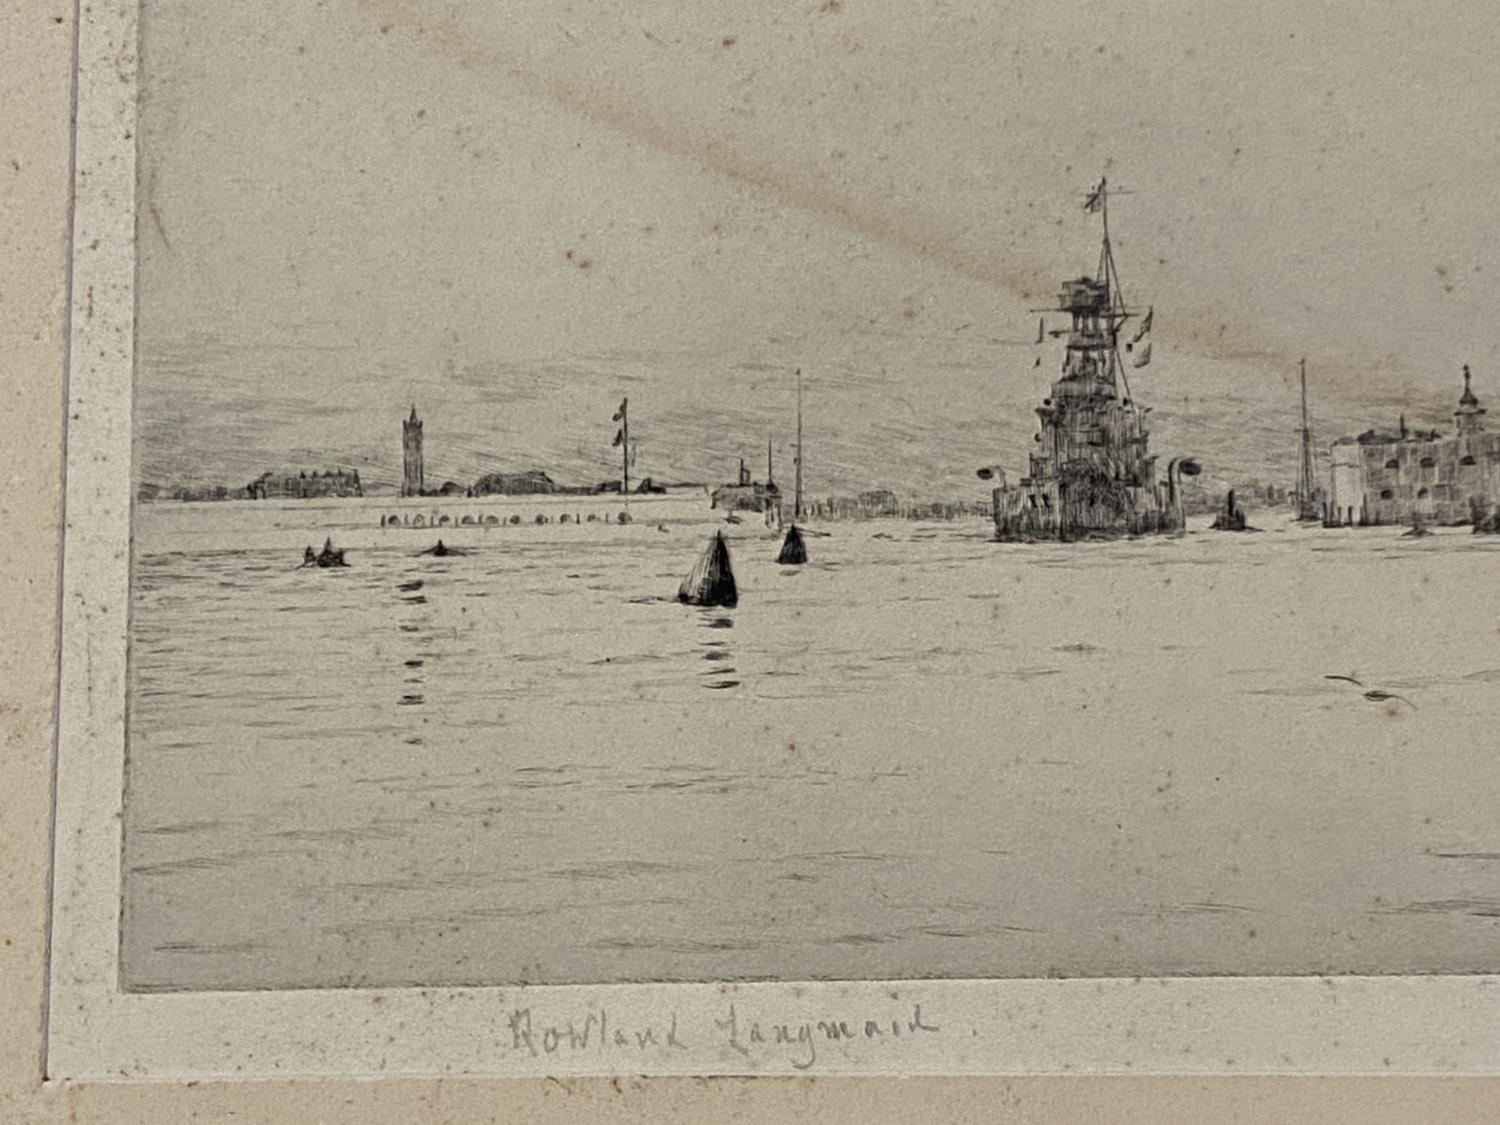 Unframed black and white maritime engraving, signed in pencil on mount, Rowland Langmaid 17 x 35 - Image 2 of 2